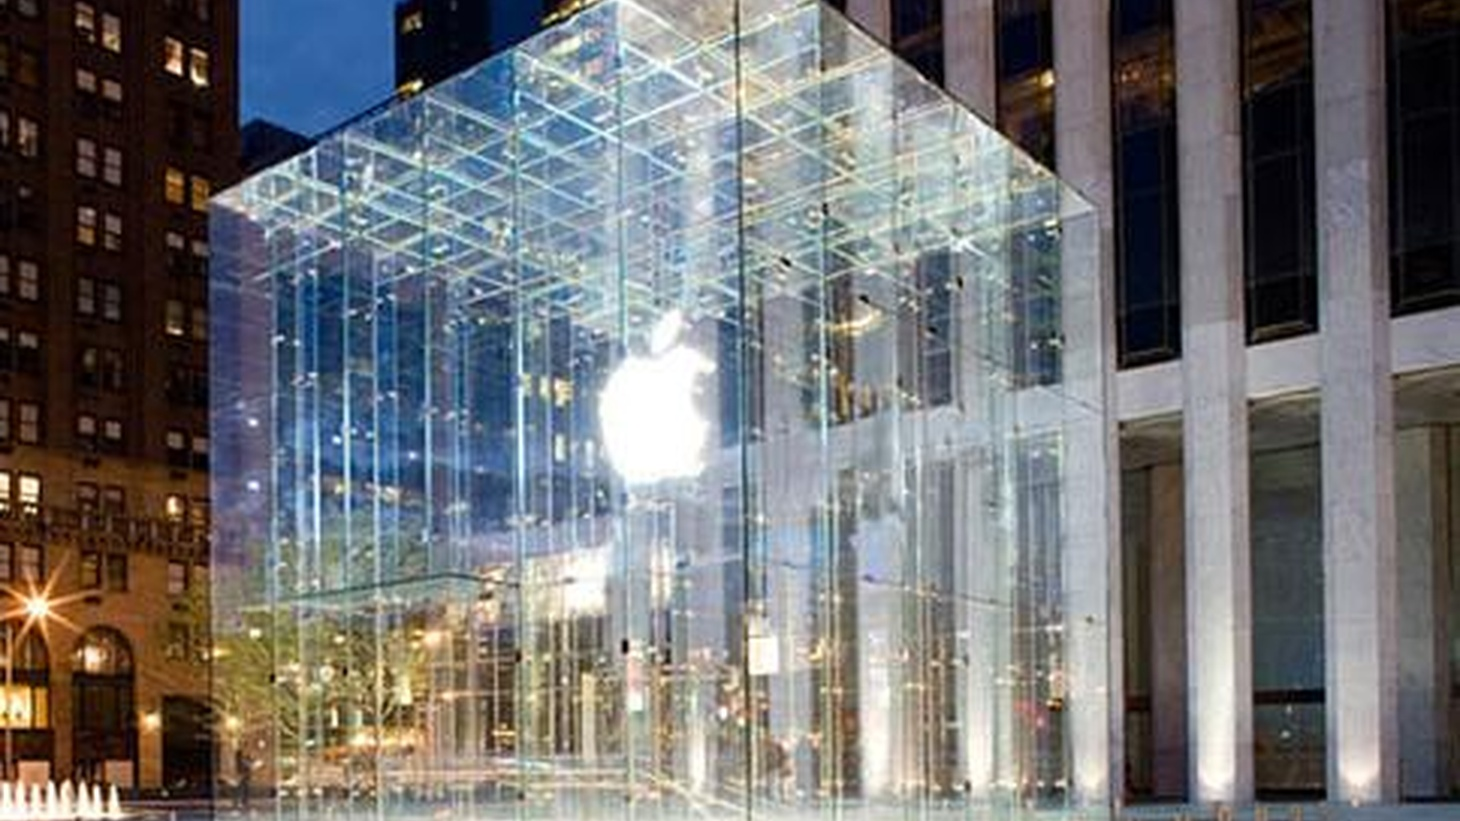 The Apple brand has become so powerful that its Manhattan store is a tourist landmark. What's the secret to turning customers into devotees? Andrew Blum and Sasha Strauss join Frances Anderton for a discussion on Apple-worship and the art of branding.